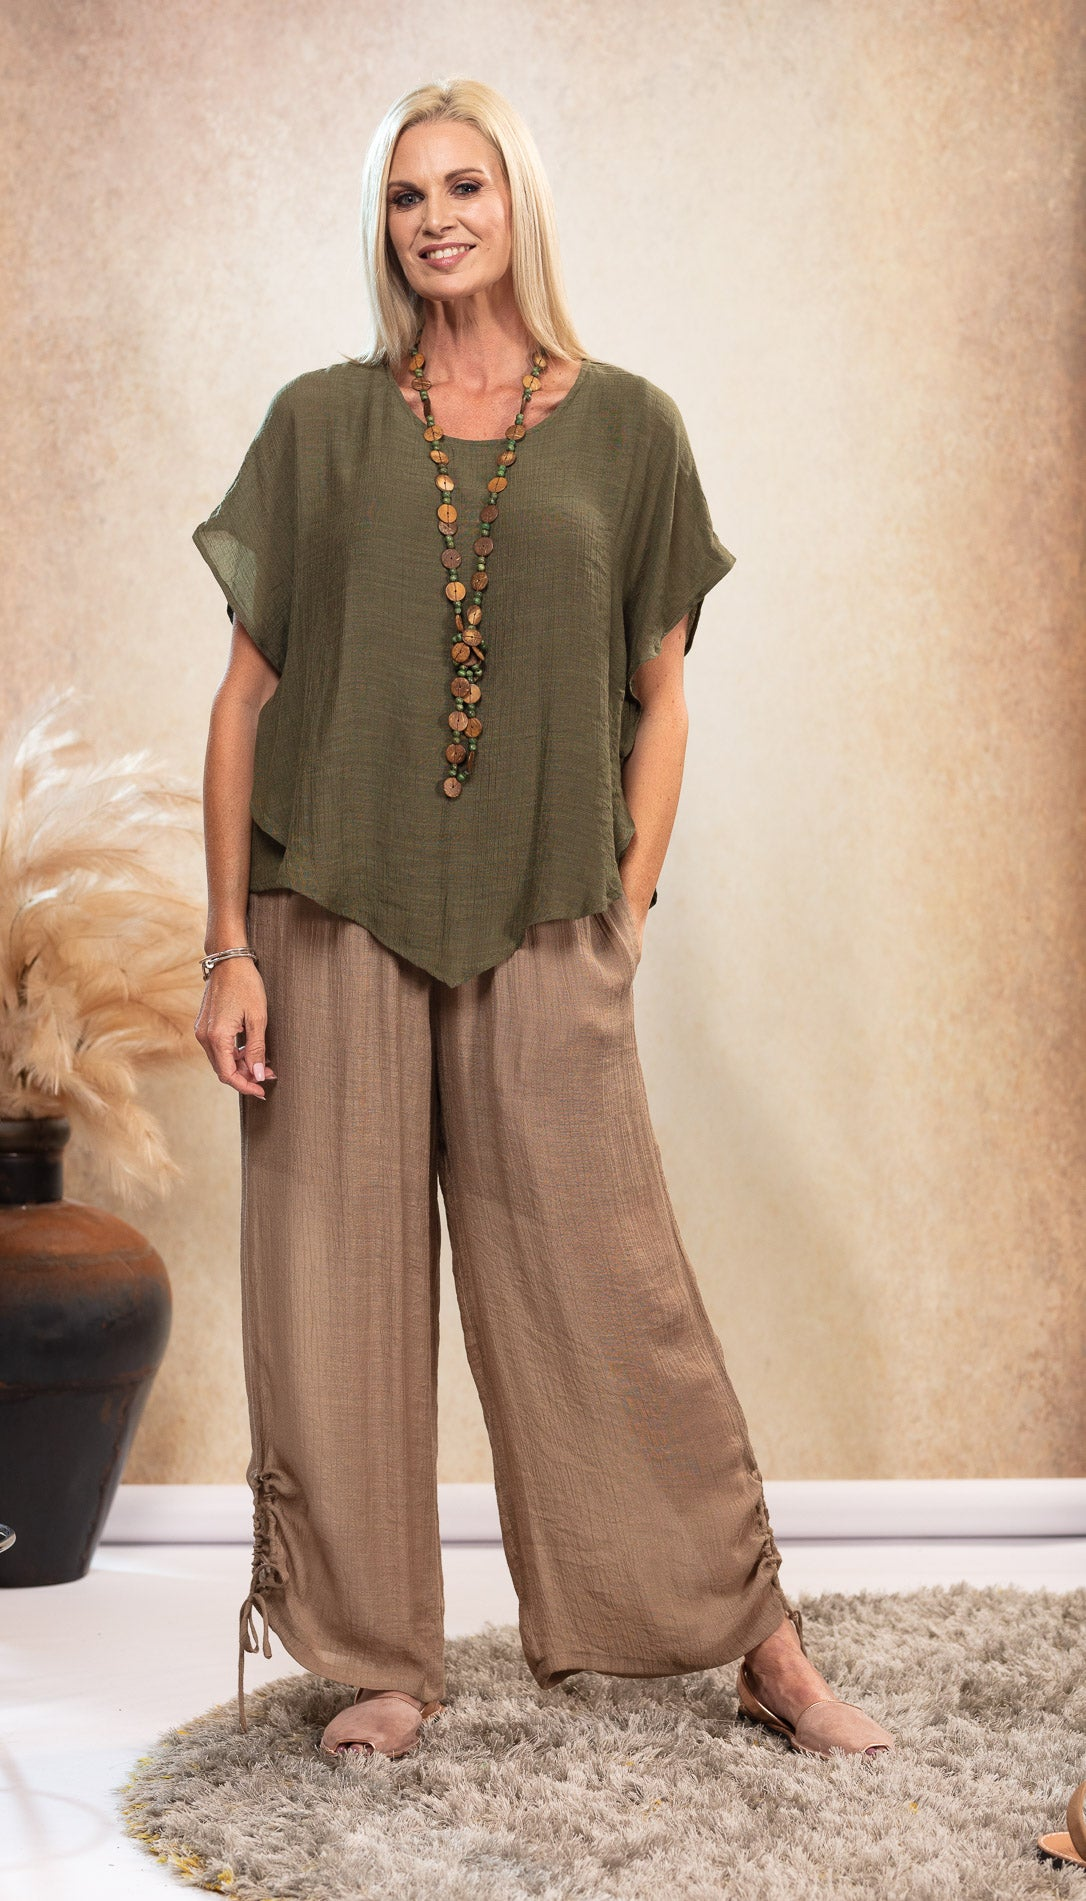 Long Bamboo Pants. Beige Latte colour. Olive Khaki Green Bamboo Top. Natural colour sandals. Nude Avarca sandals.